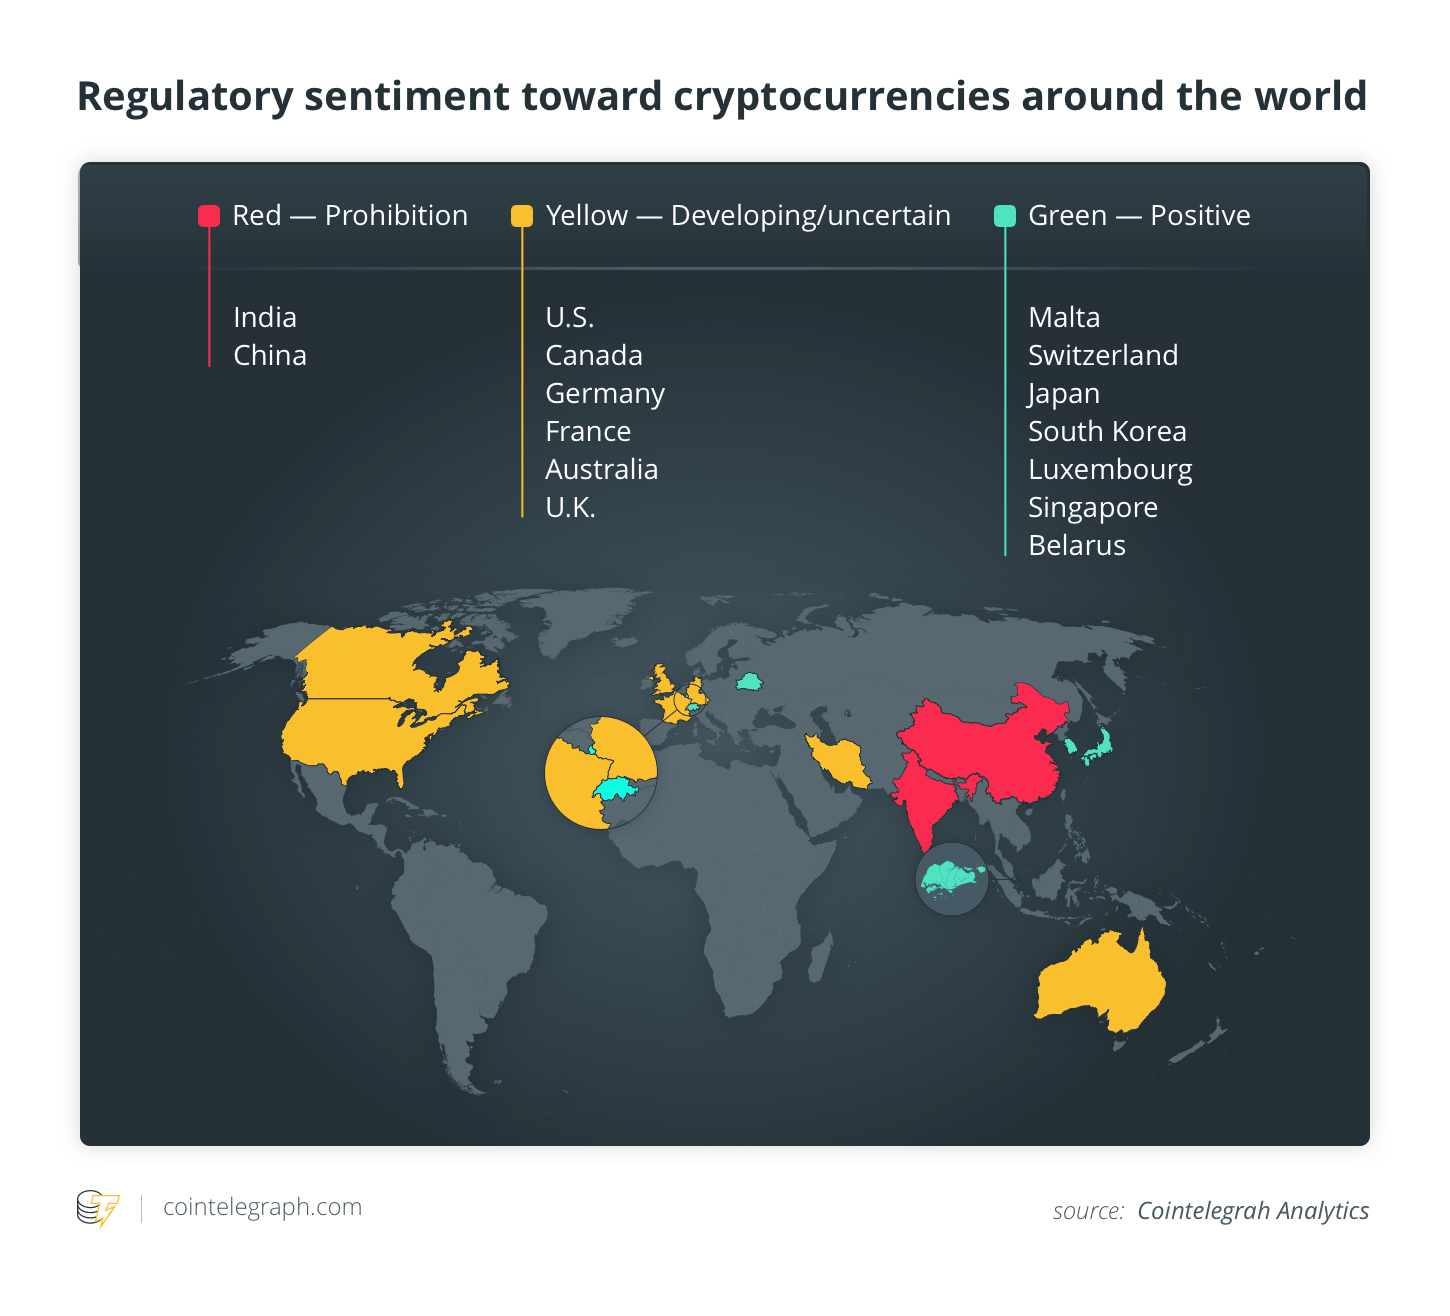 Crypto Regulation Outlook in 2019 — What Is the Global Scenario?